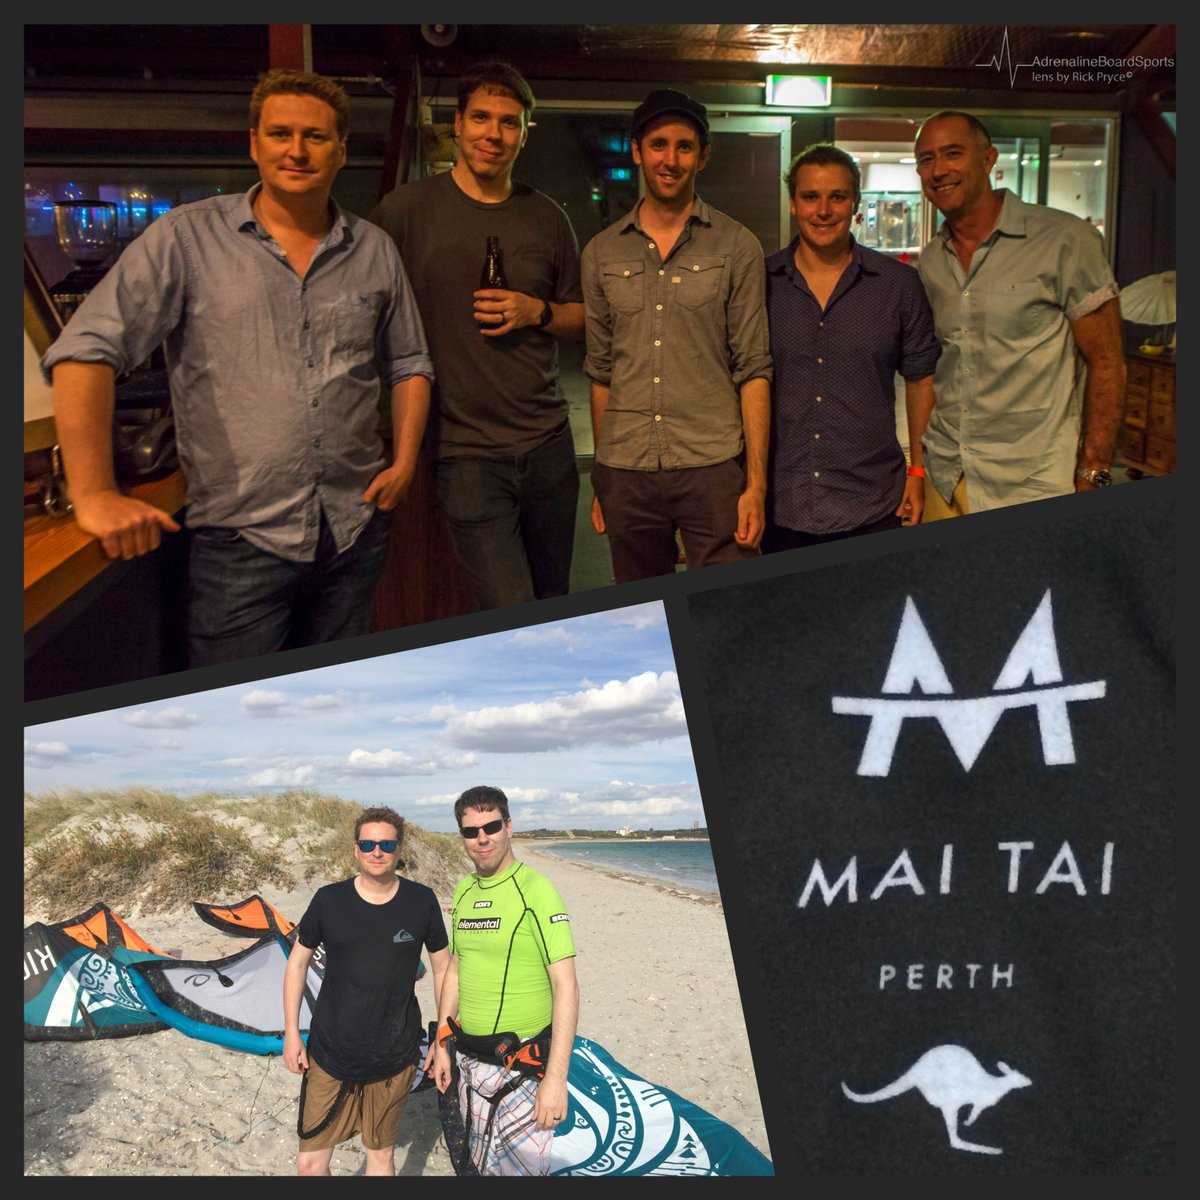 At Mai Tai Global the kiteboard-room of events in Perth, Australia with @KiteVC & @SusiKite #MaiTai #MaiTaiGlobal https://t.co/HAuS8Bn0ut